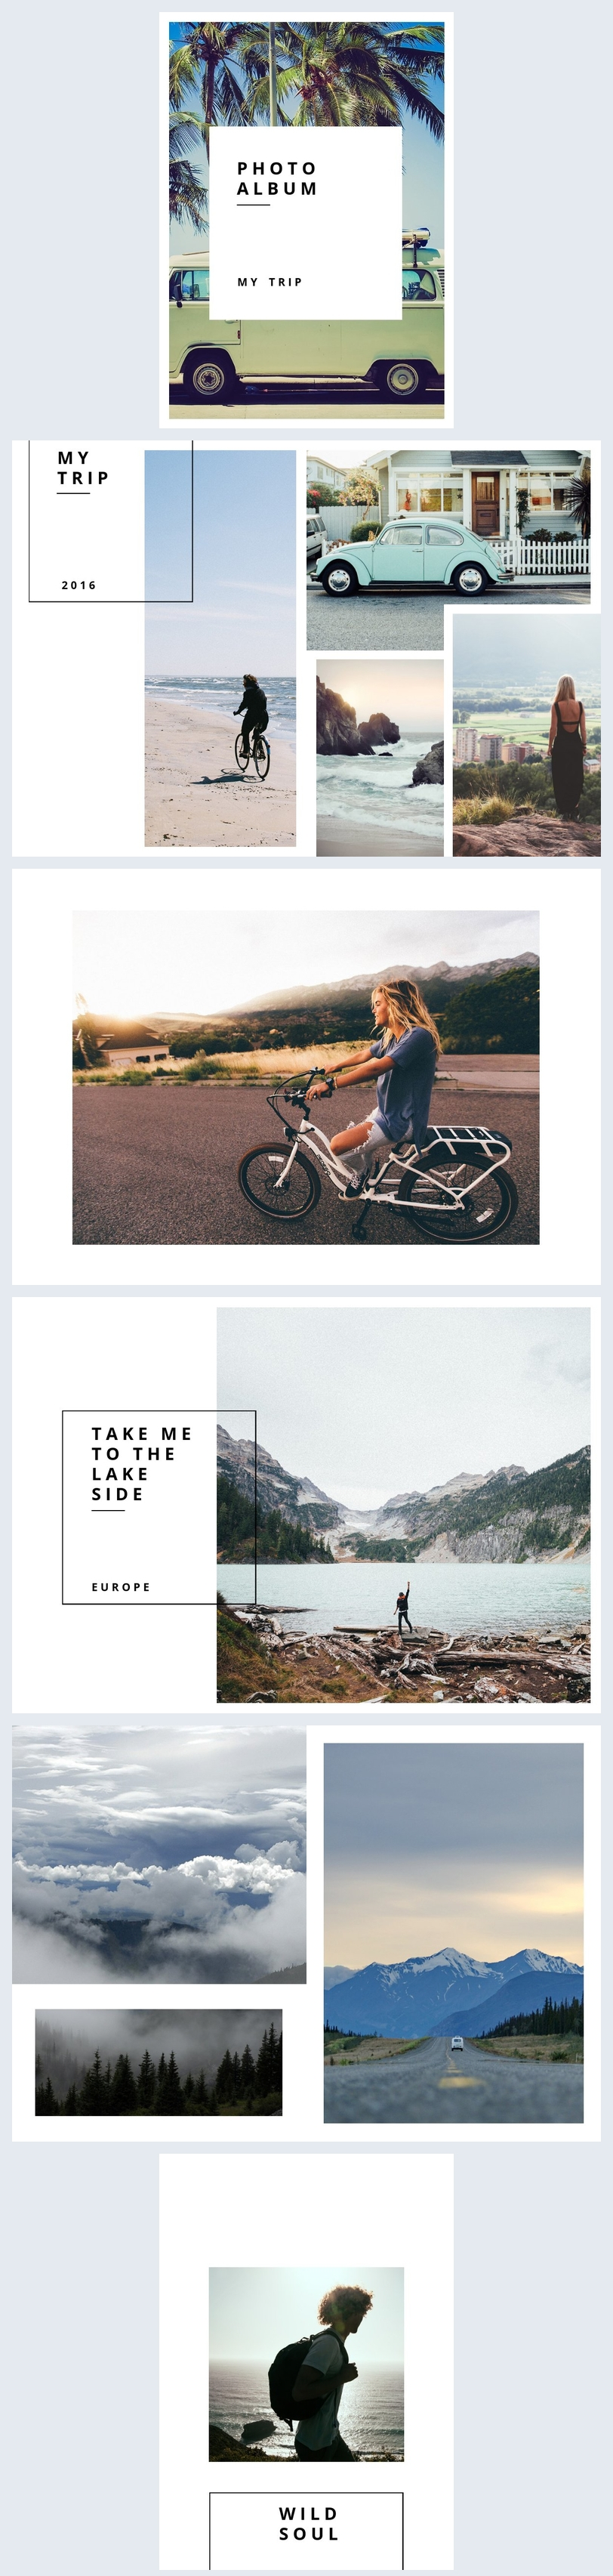 Trips & Travel Photo Album Template